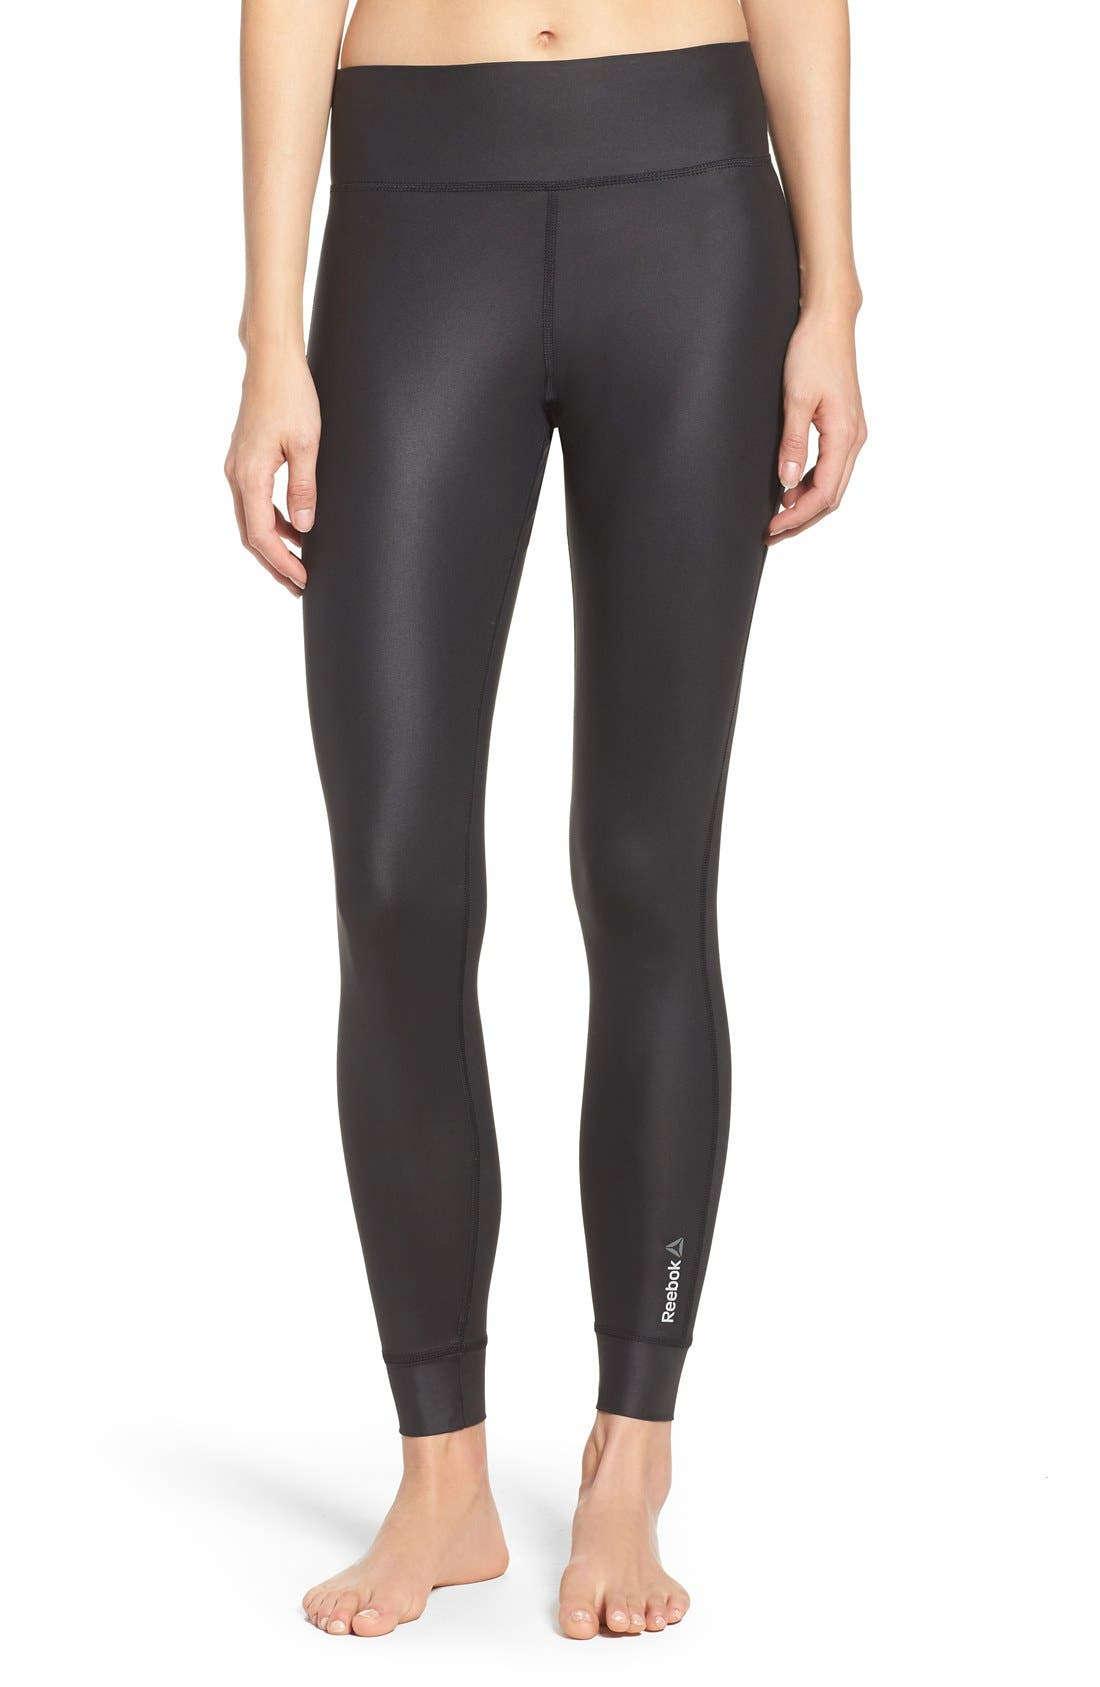 Reebok Studio Lux High Shine Tights